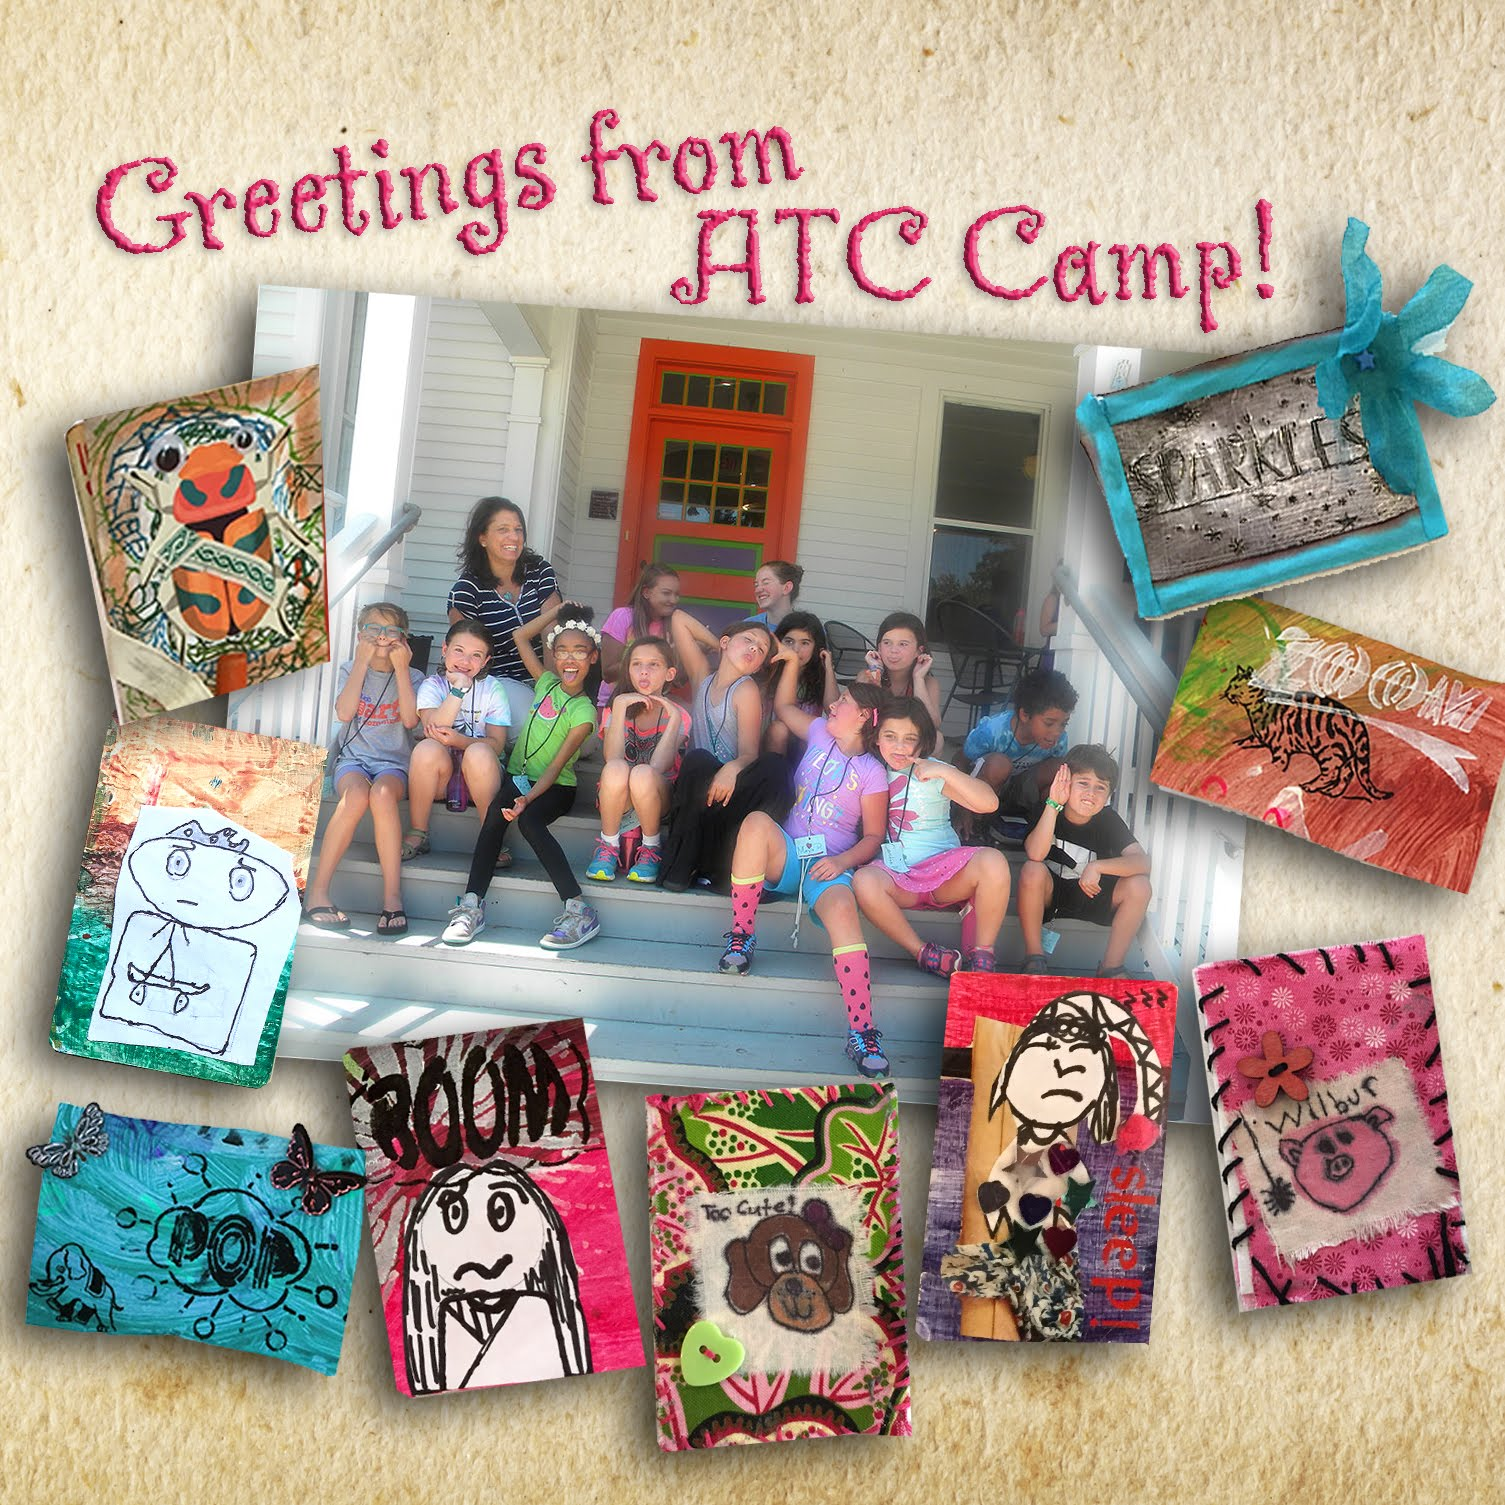 Stencilgirl talk greetings from atc camp greetings from atc camp kristyandbryce Images